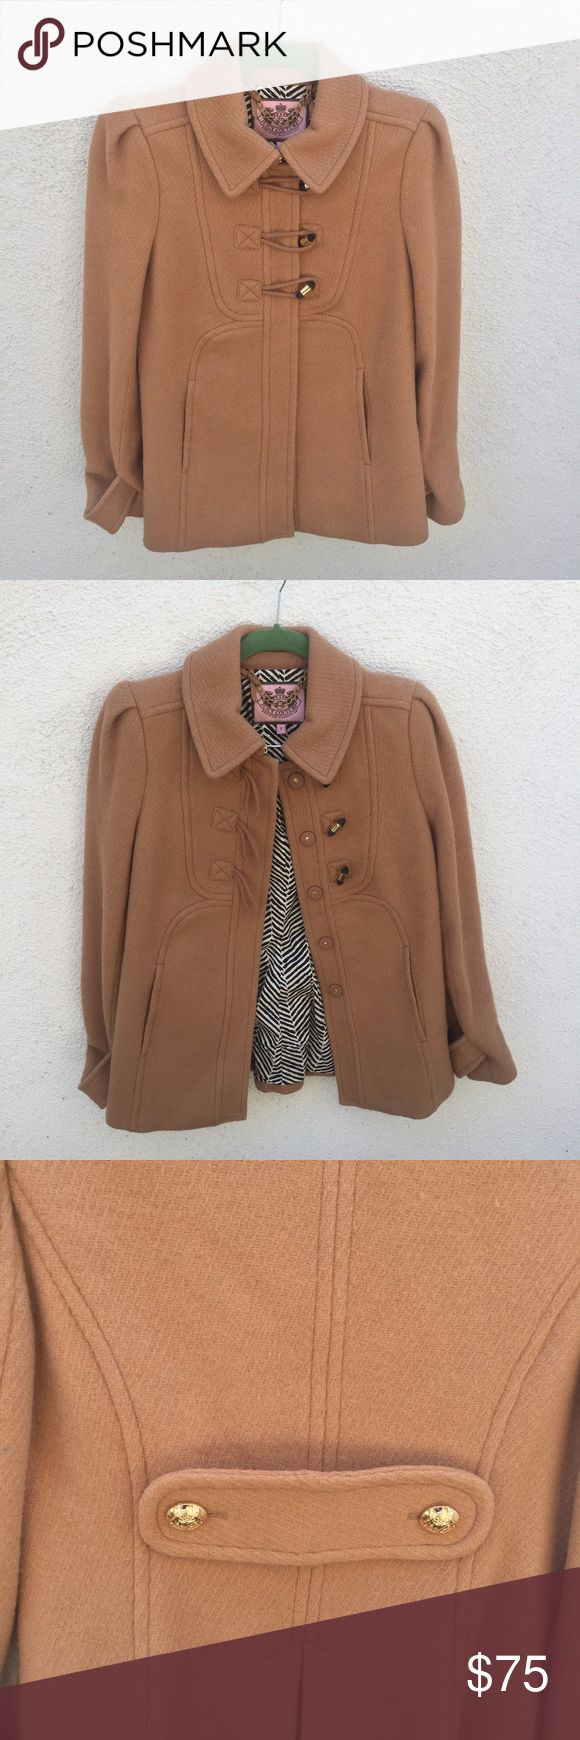 Juicy Couture Brown Trench Coat Jacket Material is pilly. Size Small. Juicy Couture Jackets & Coats Trench Coats